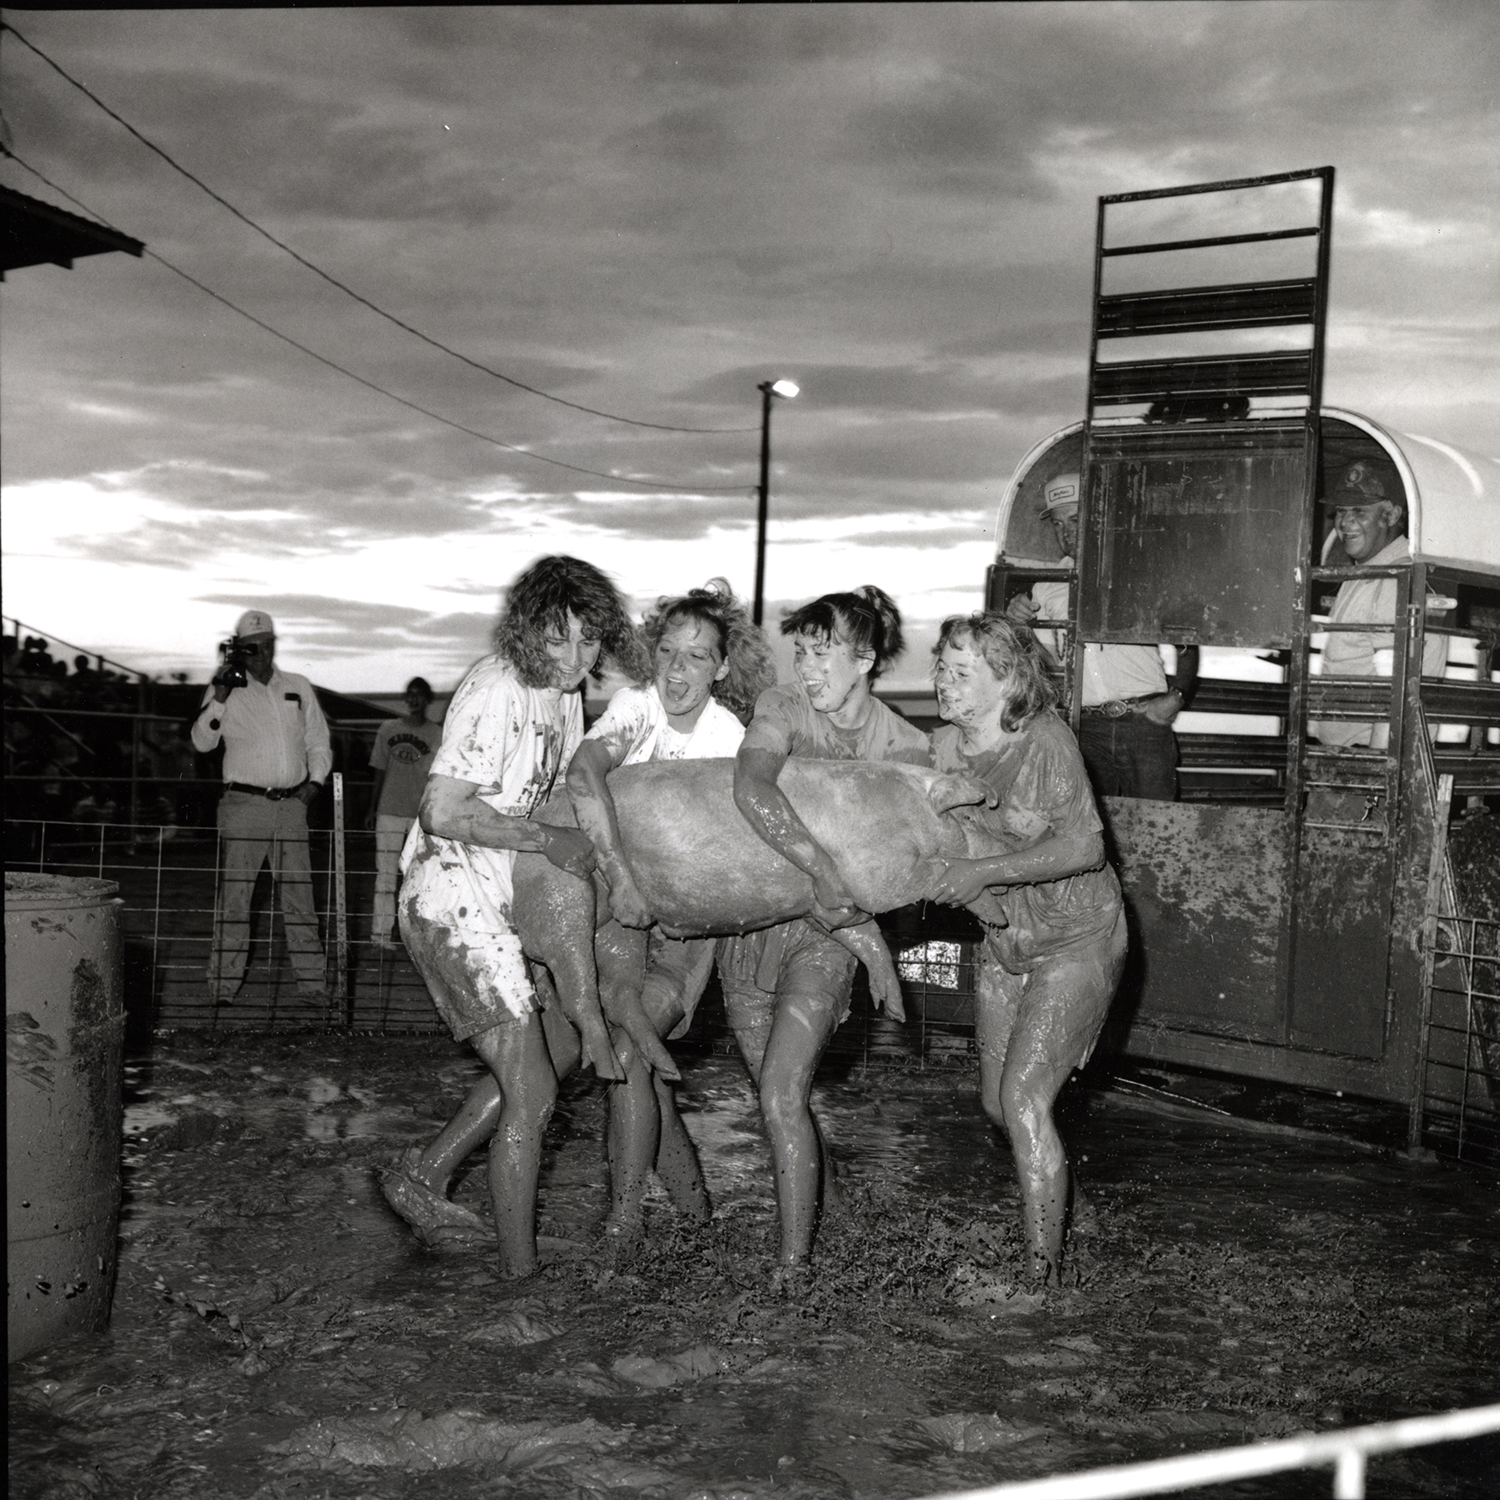 Girls with Muddy Pig, Wheatland, Wyoming, archival pigment print, 16x20, 1989